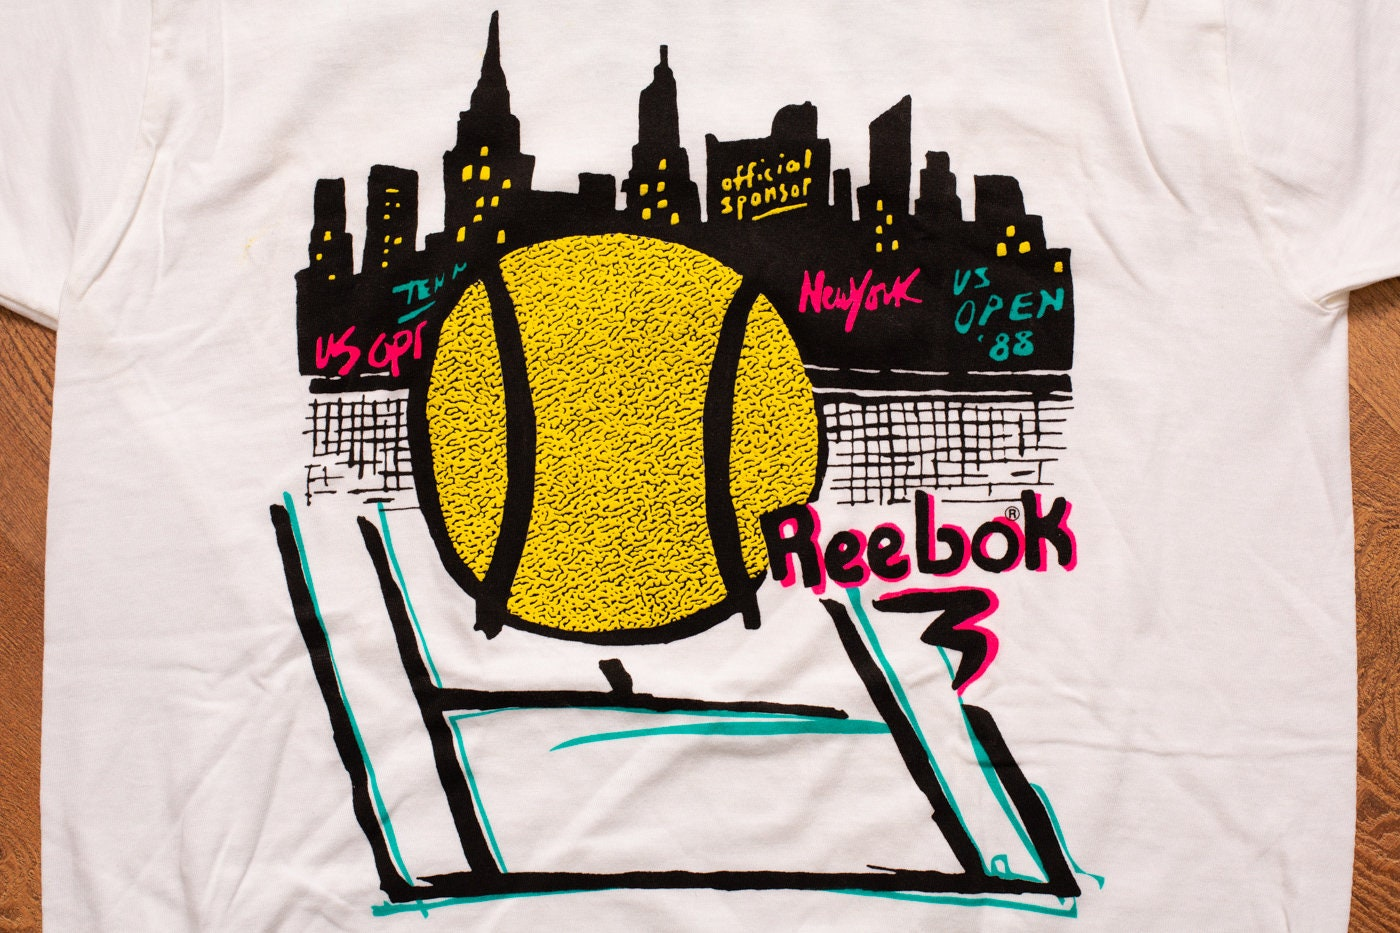 3770b972a3c3e 80s Reebok 1988 US Open NEON T-Shirt, M, NYC Tennis Tournament, Vintage  1980s, New York City, Hip Hop, Sportswear, Streetwear